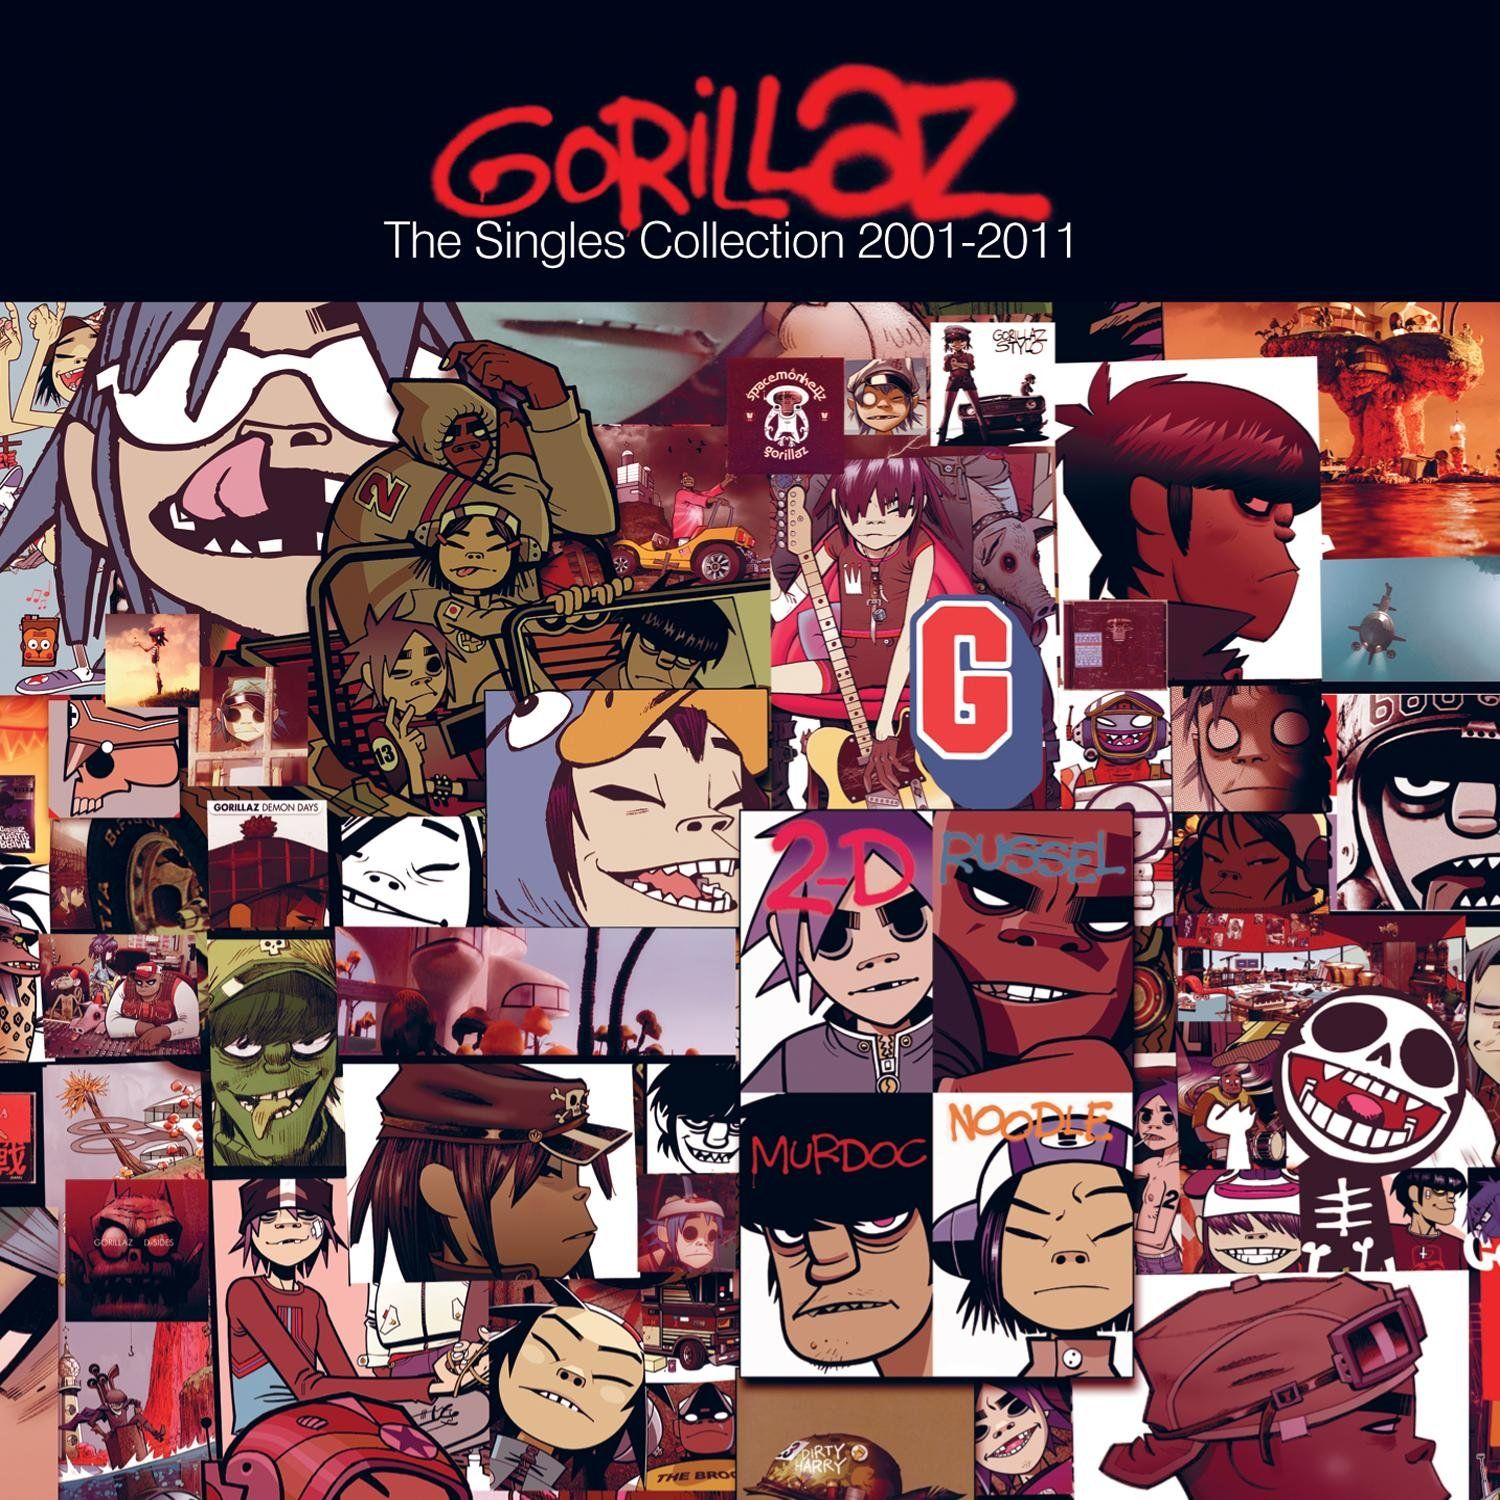 Gorillaz - The Singles Collection 2001-2011 album cover